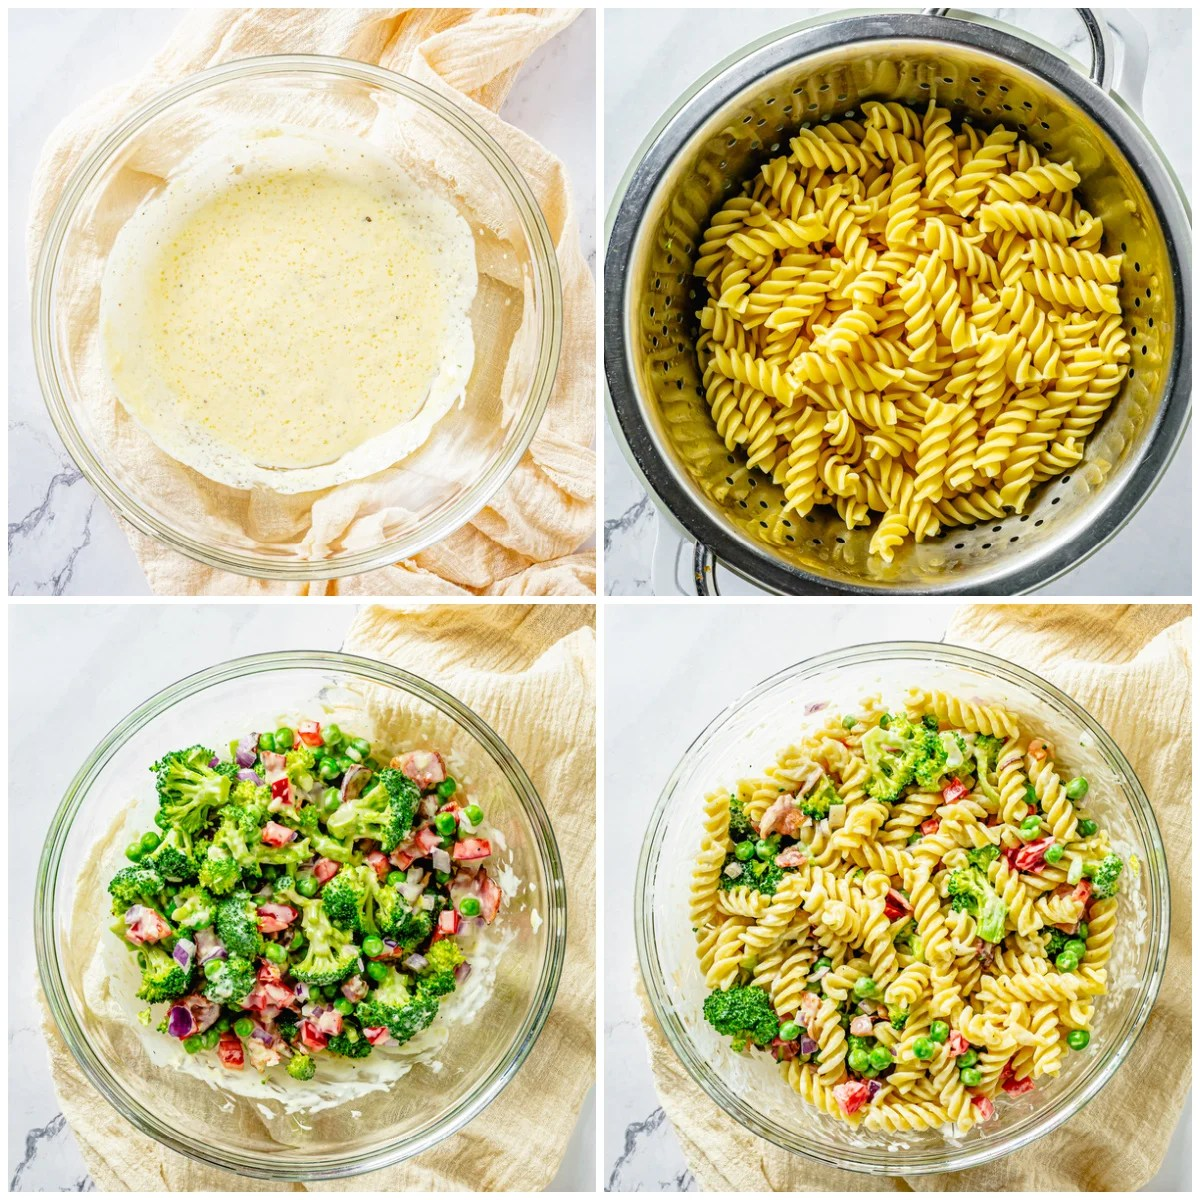 Step by step photos on how to make Broccoli Pasta Salad